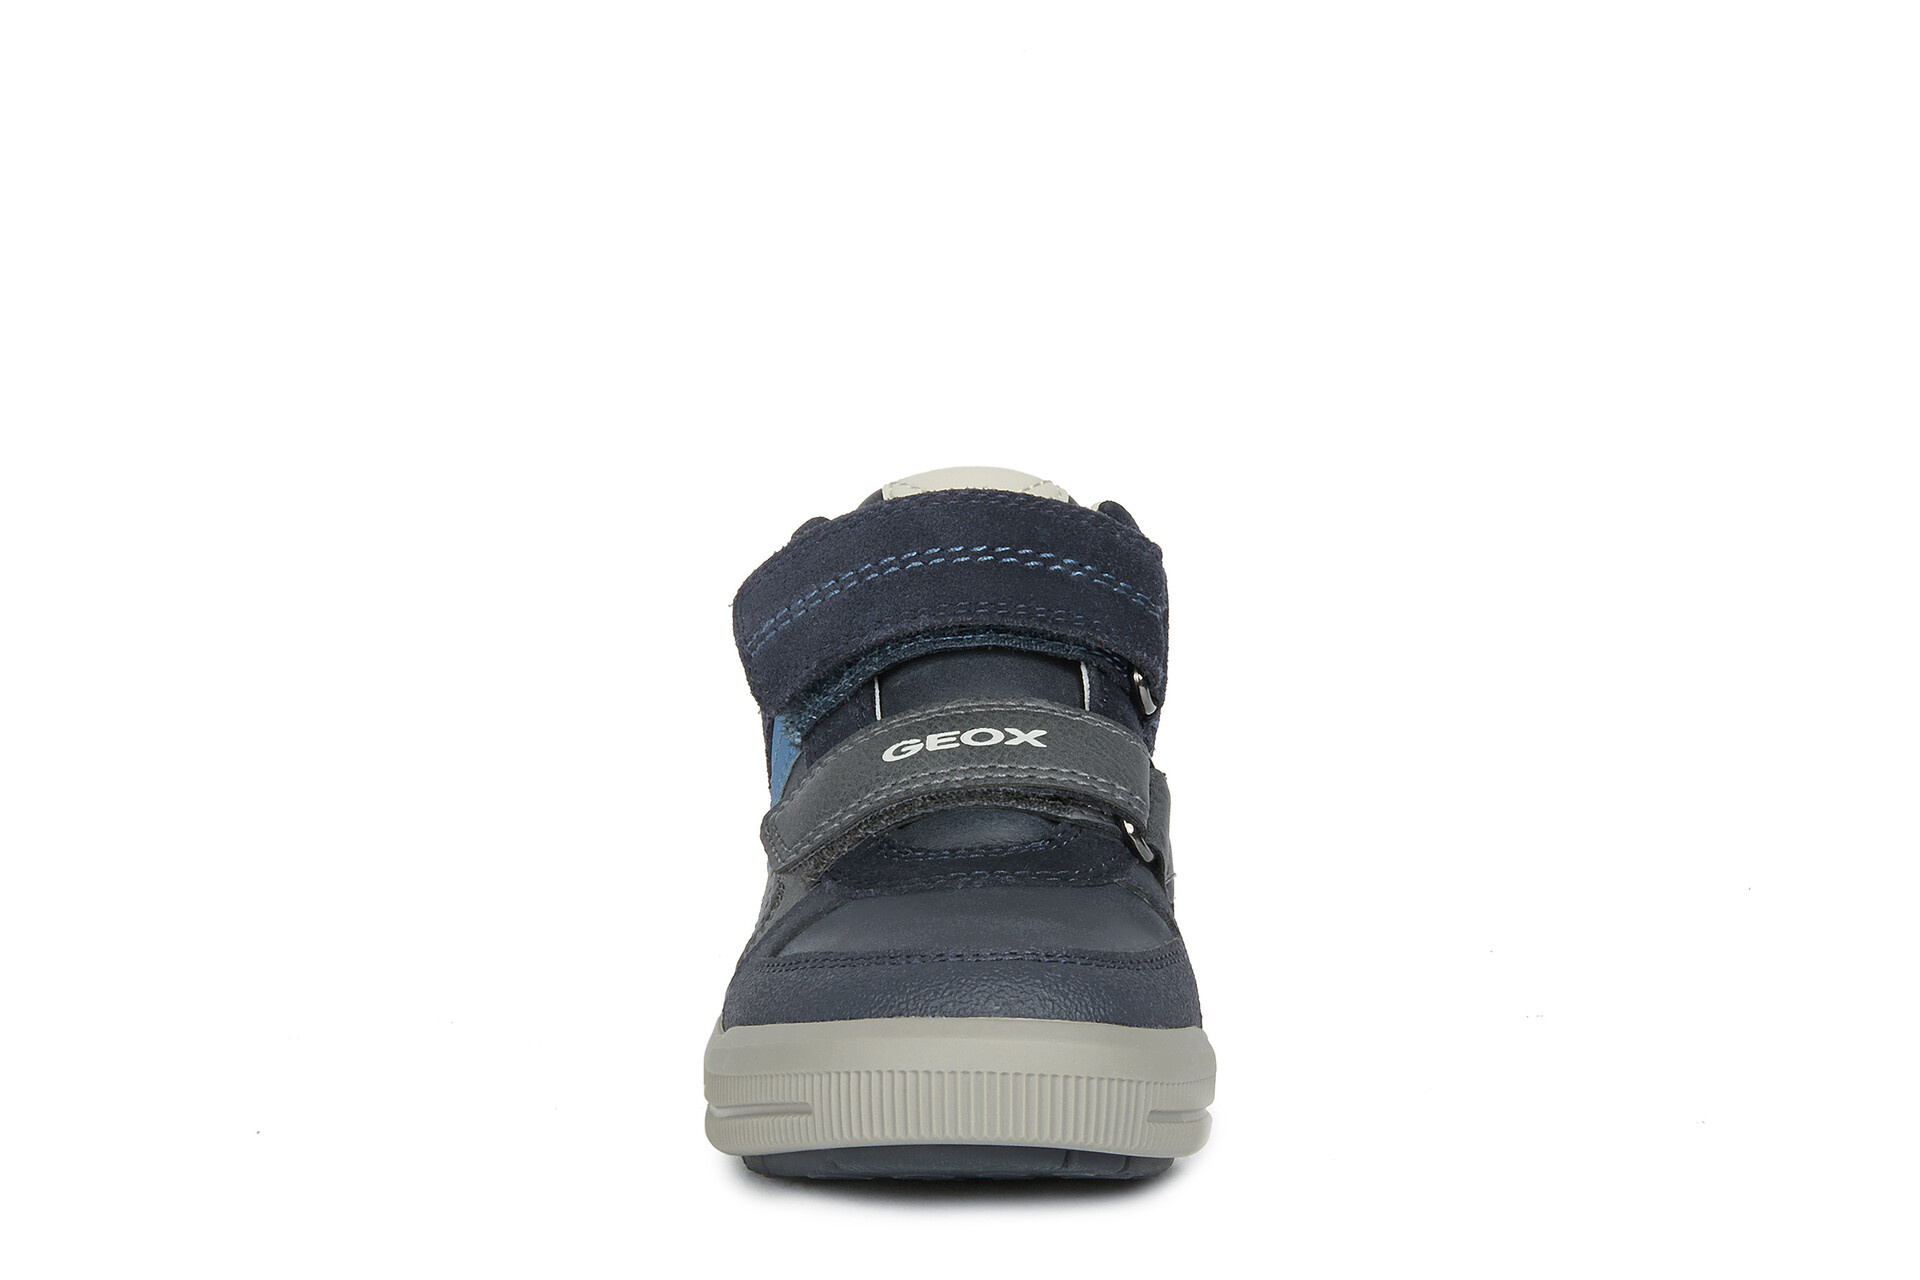 Geox Arzach navy royal